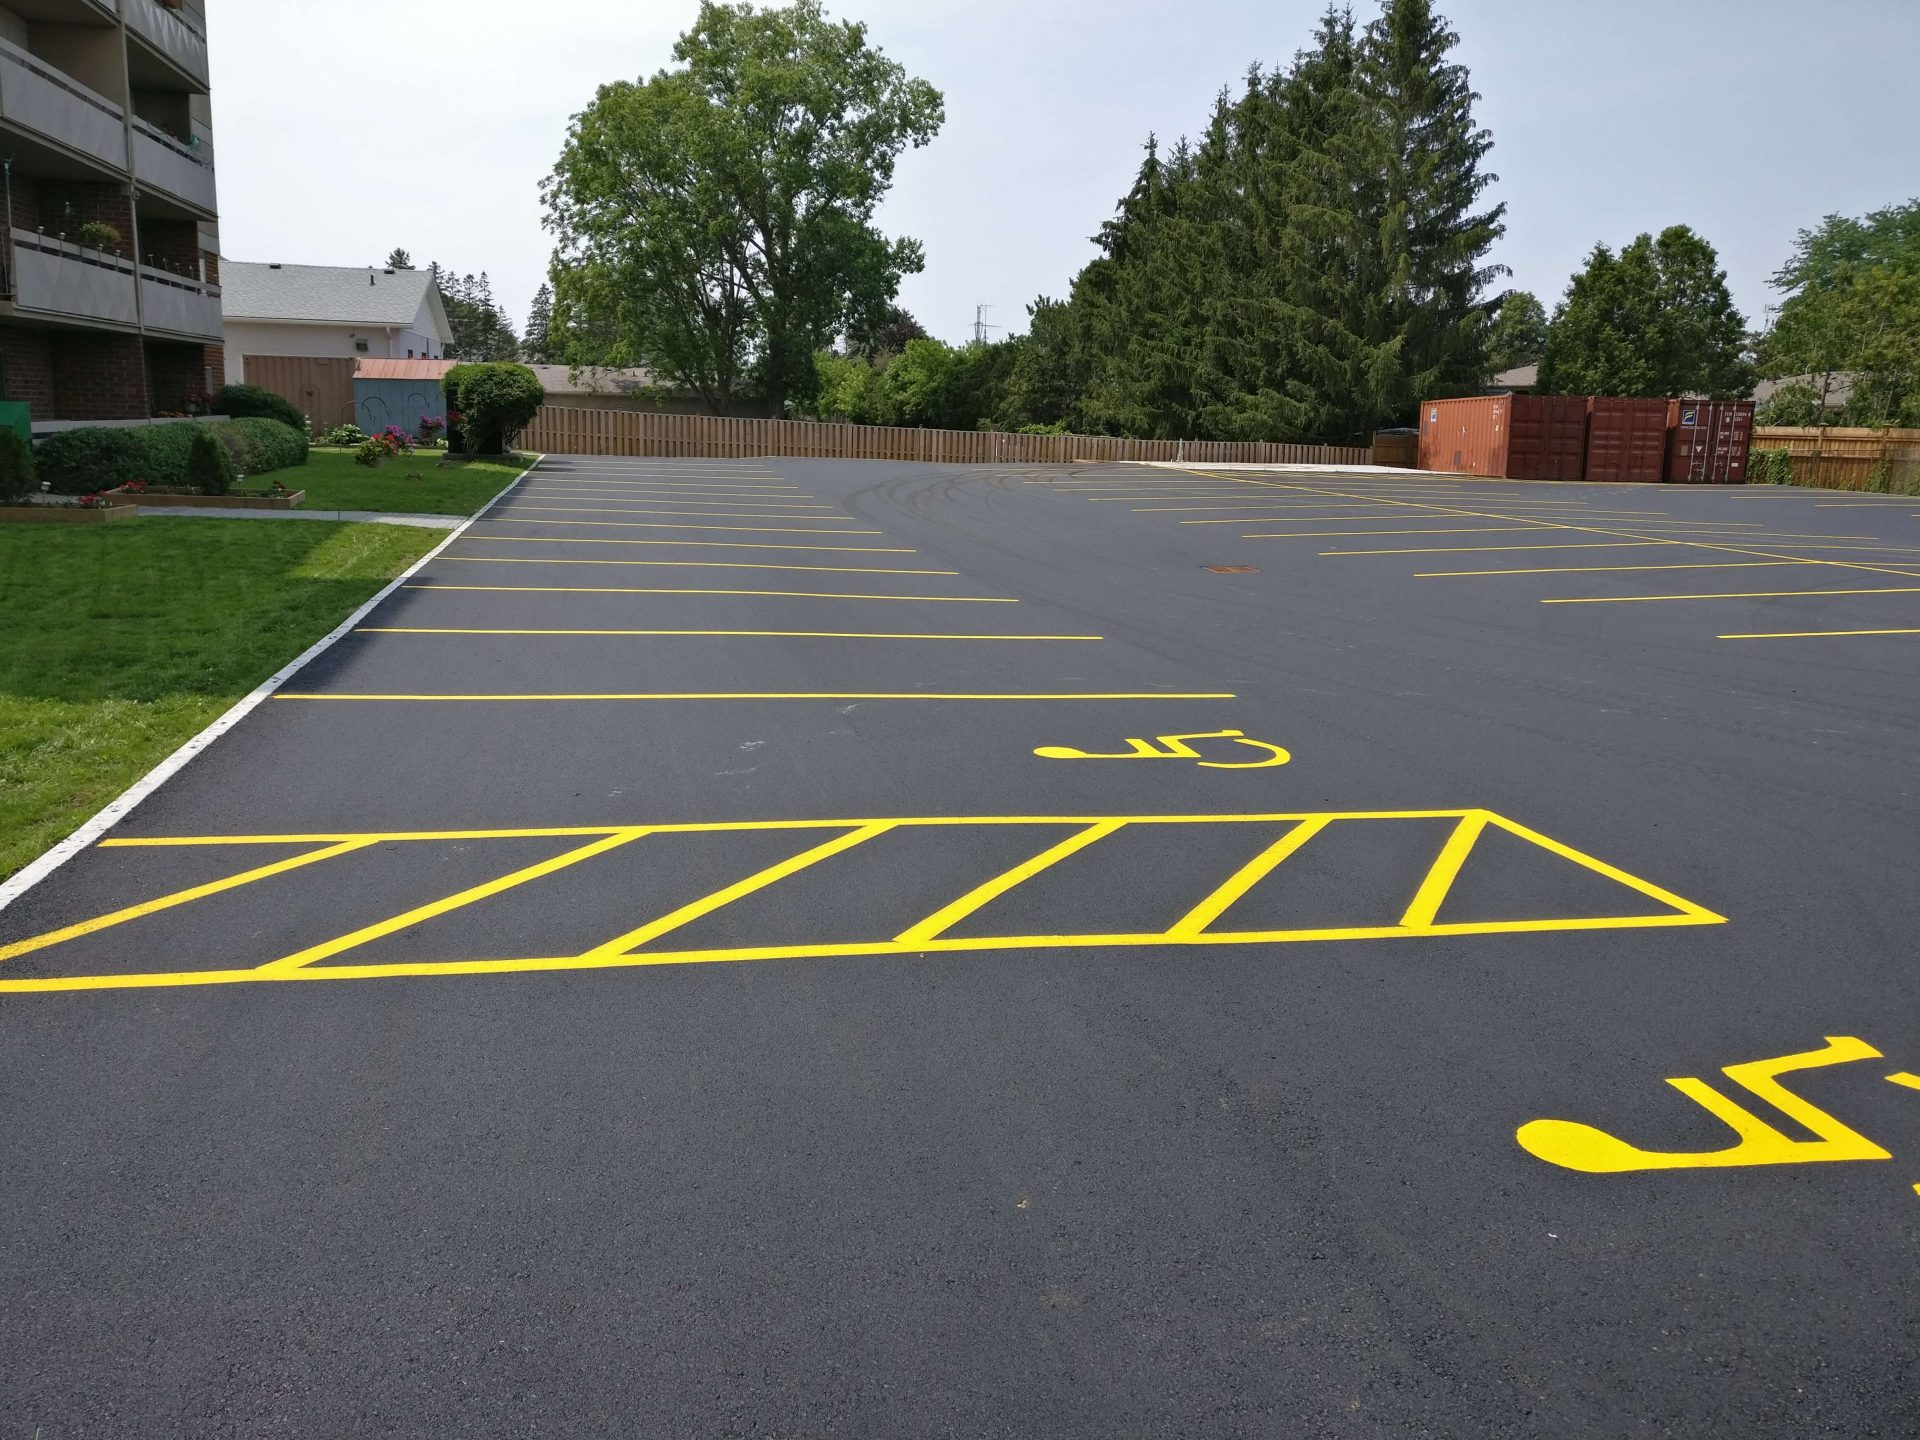 Paved handicap spaces